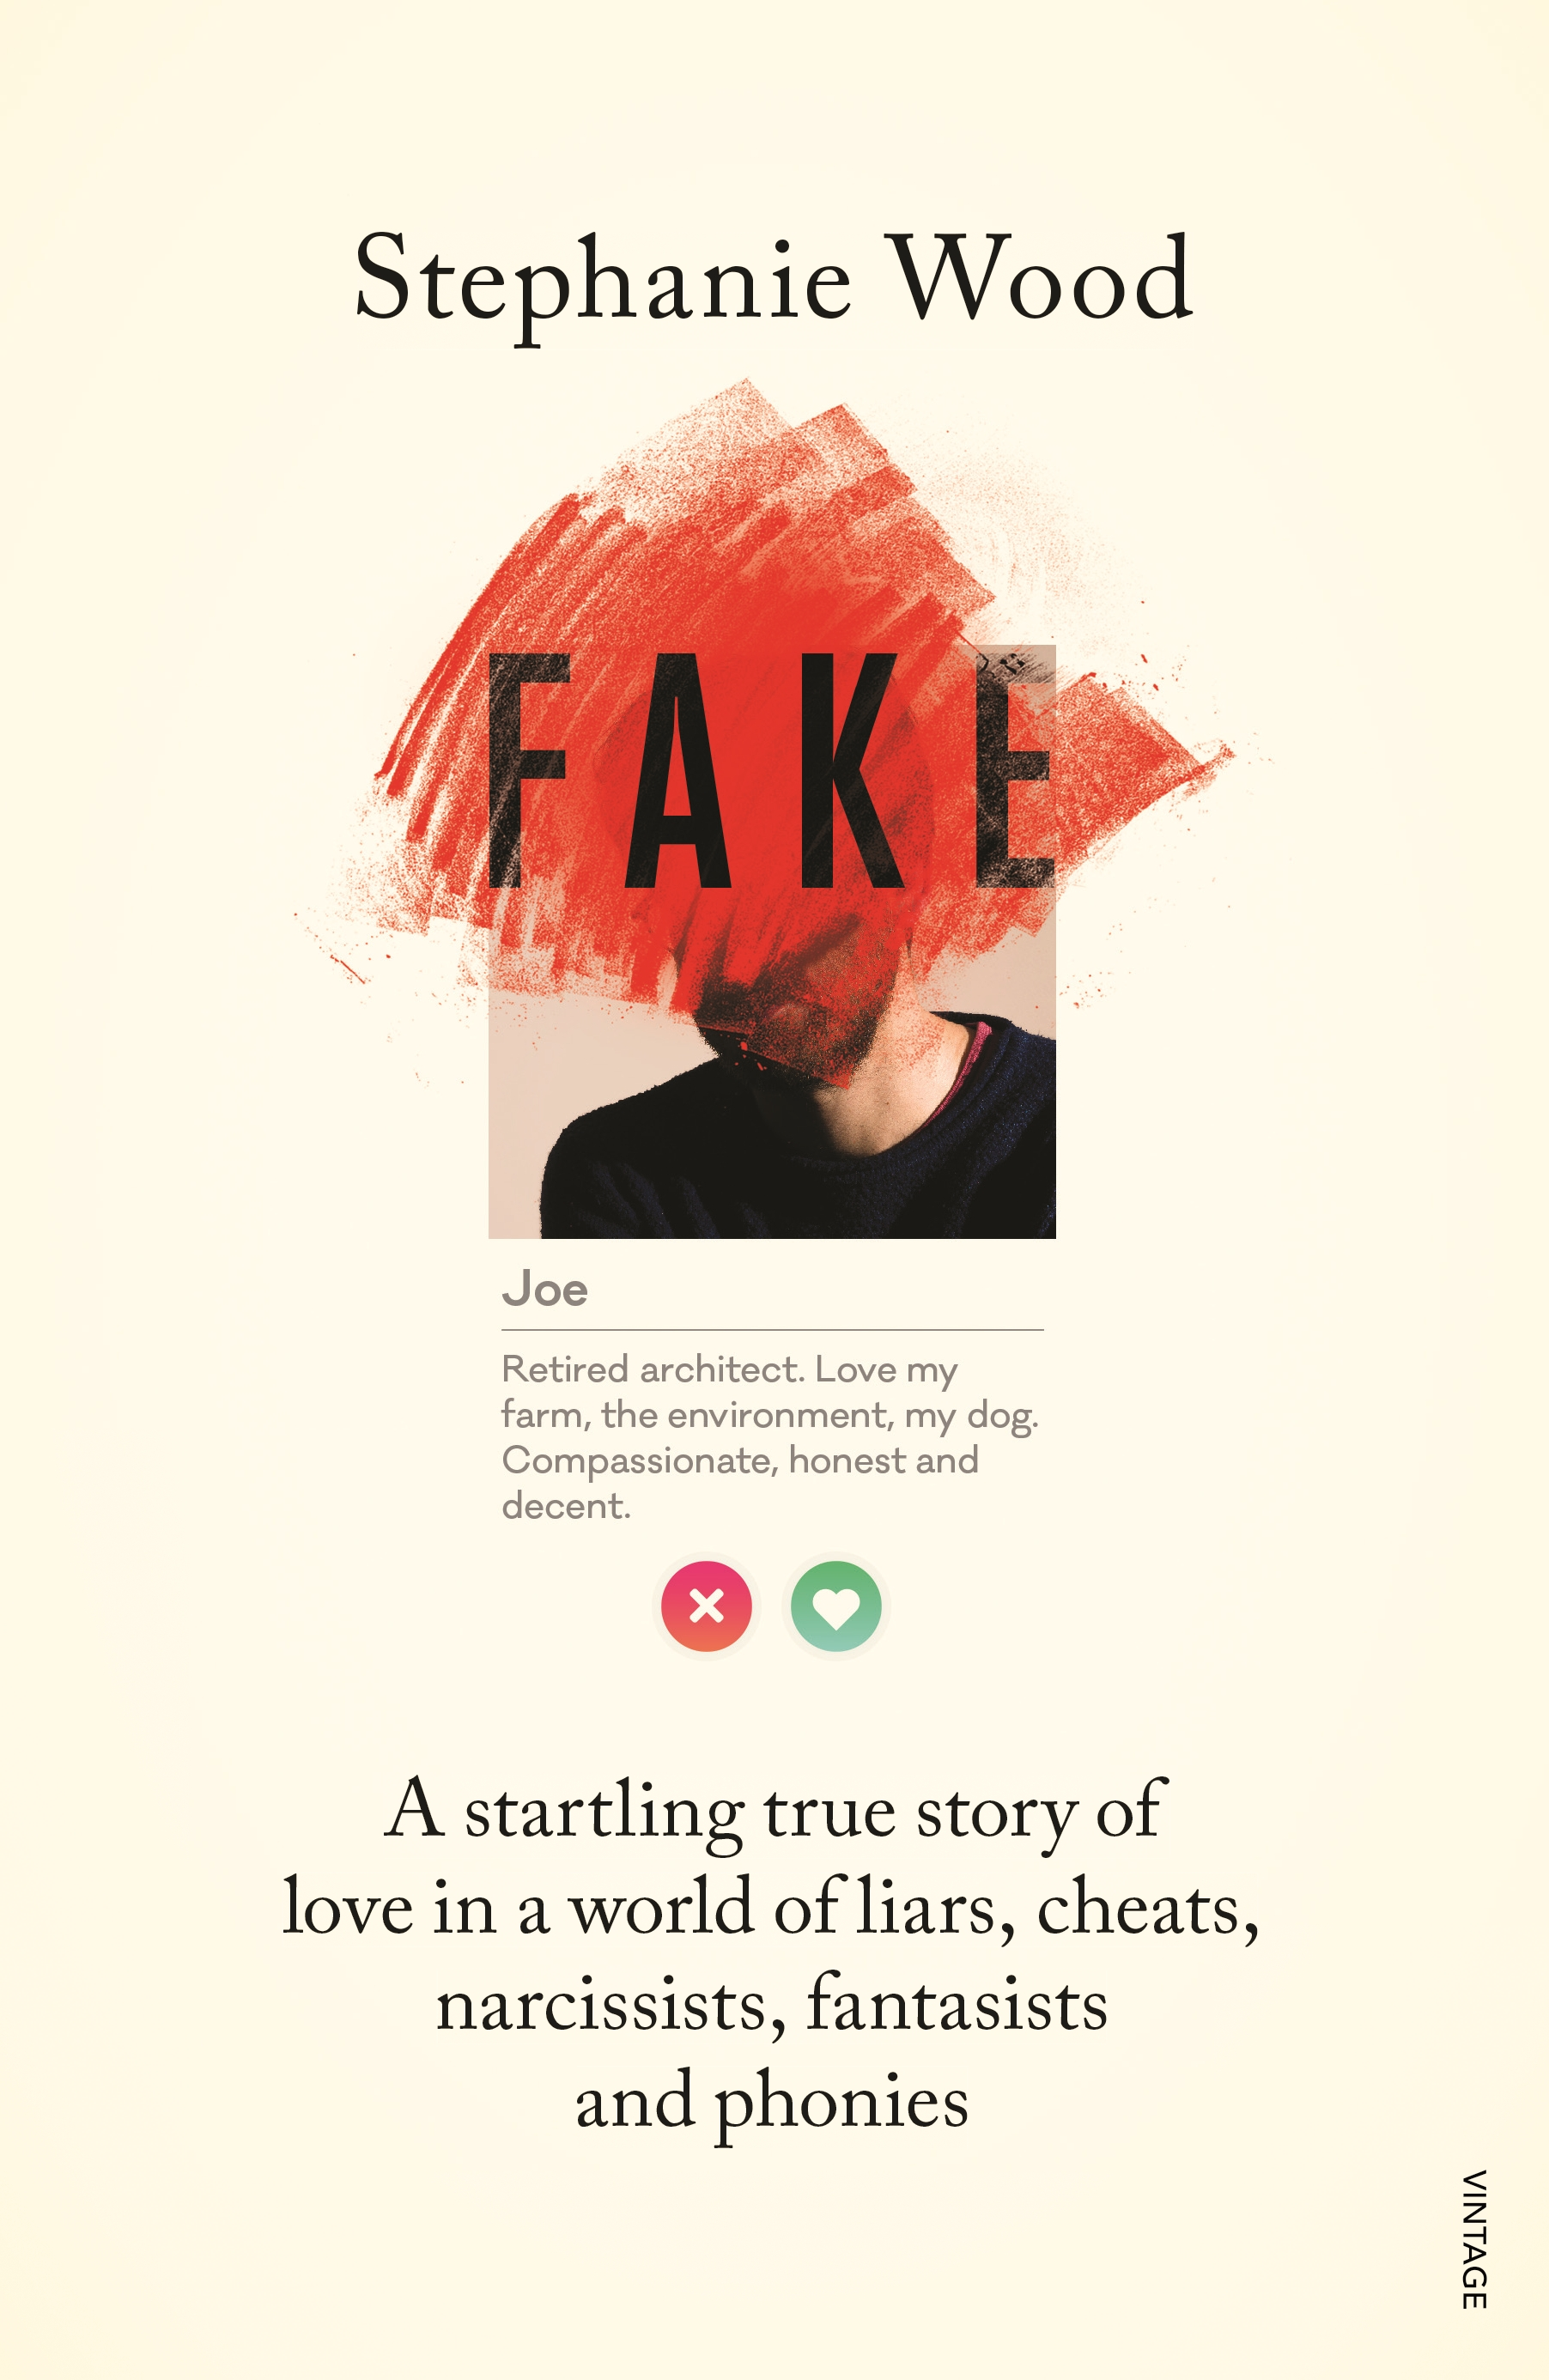 Book cover, illustrating an online dating profile of a jam whose face is painted over with the word 'FAKE'